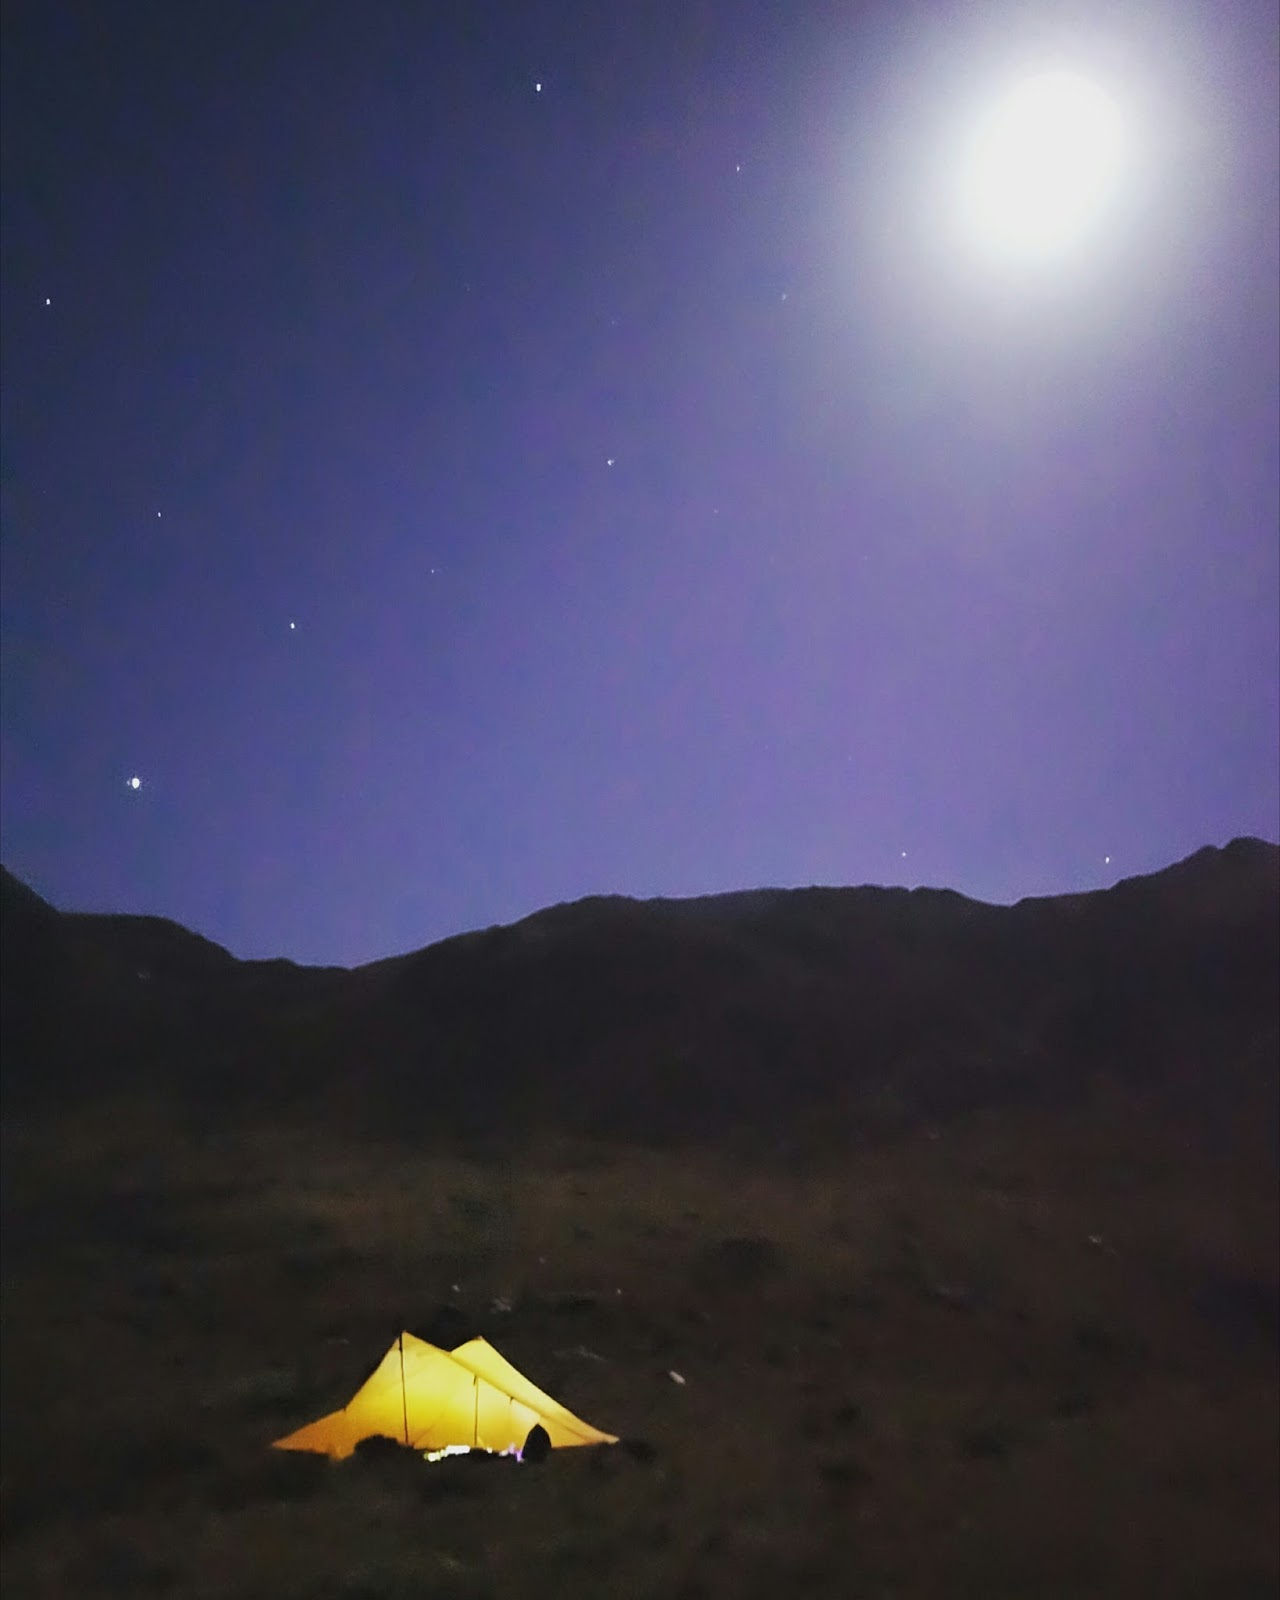 Fastpacking in Wales, Snowdonia with the MLD Trailstar